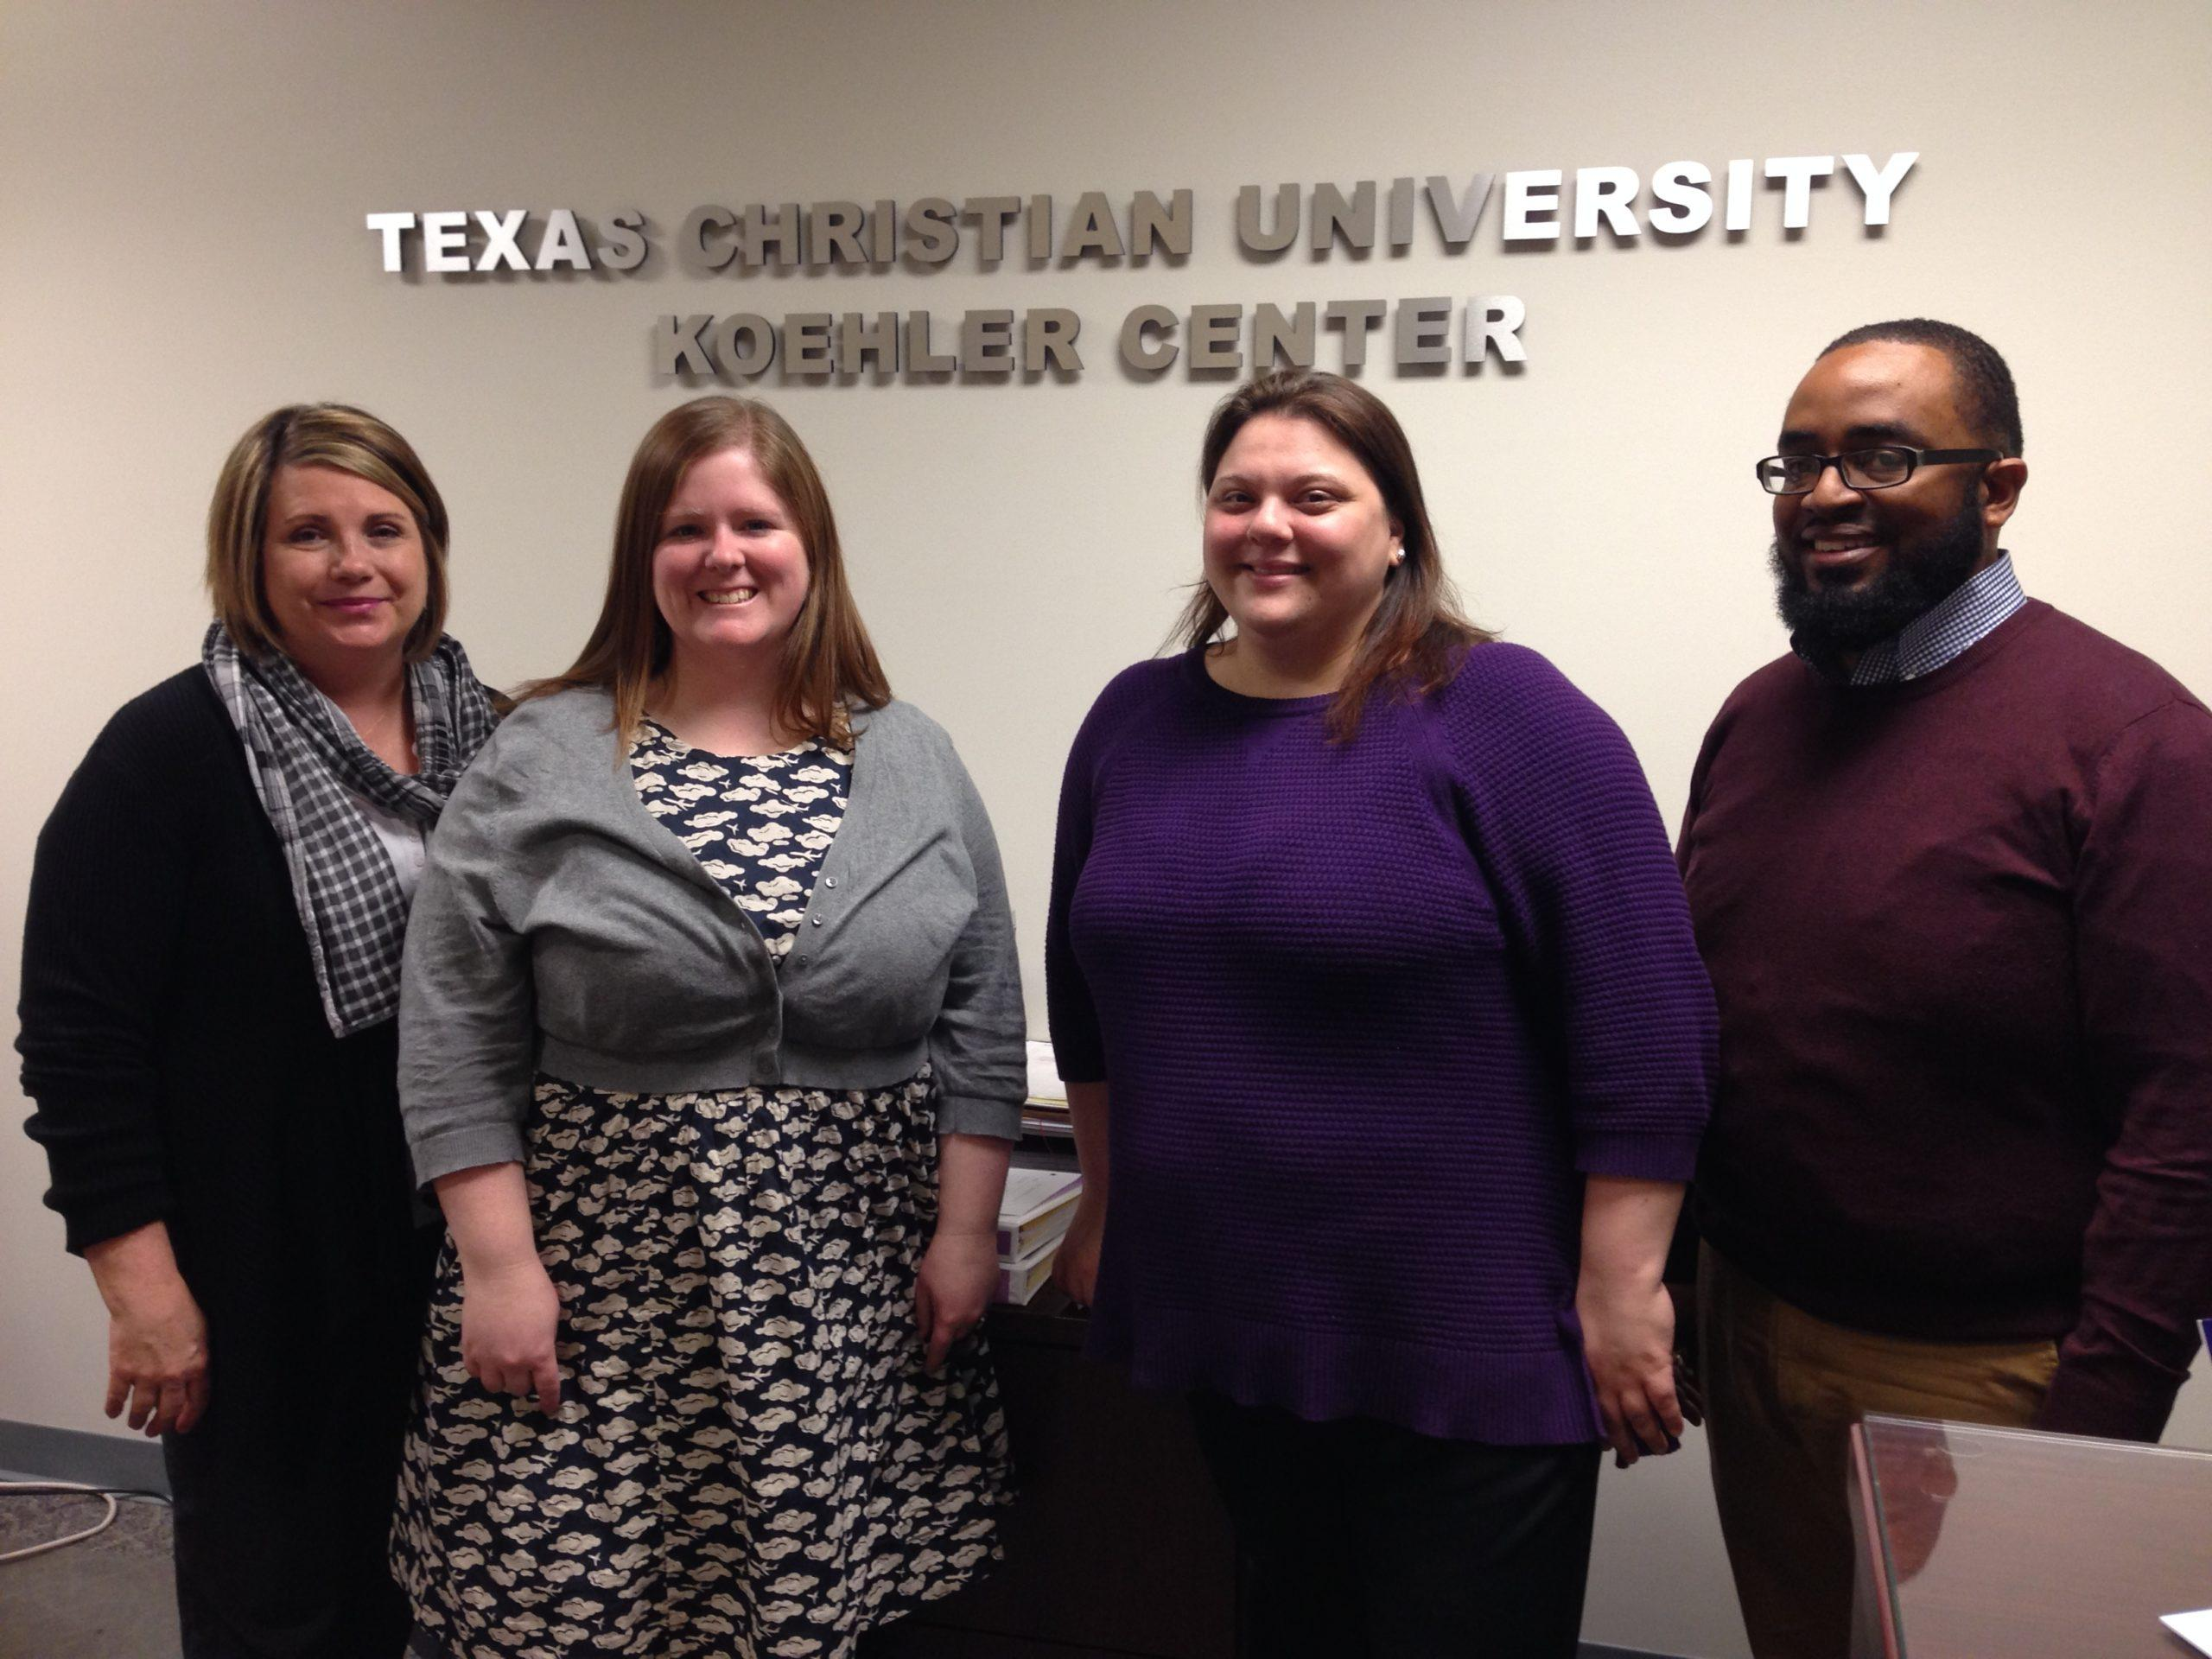 Romana Hughes, Kerrie Meister, Joanna Schmidt and Desmond Morris are leading the transition from eCollege to TCU Online. They are pictured here on Monday, Feb. 22, 2016, in Fort Worth, Texas.